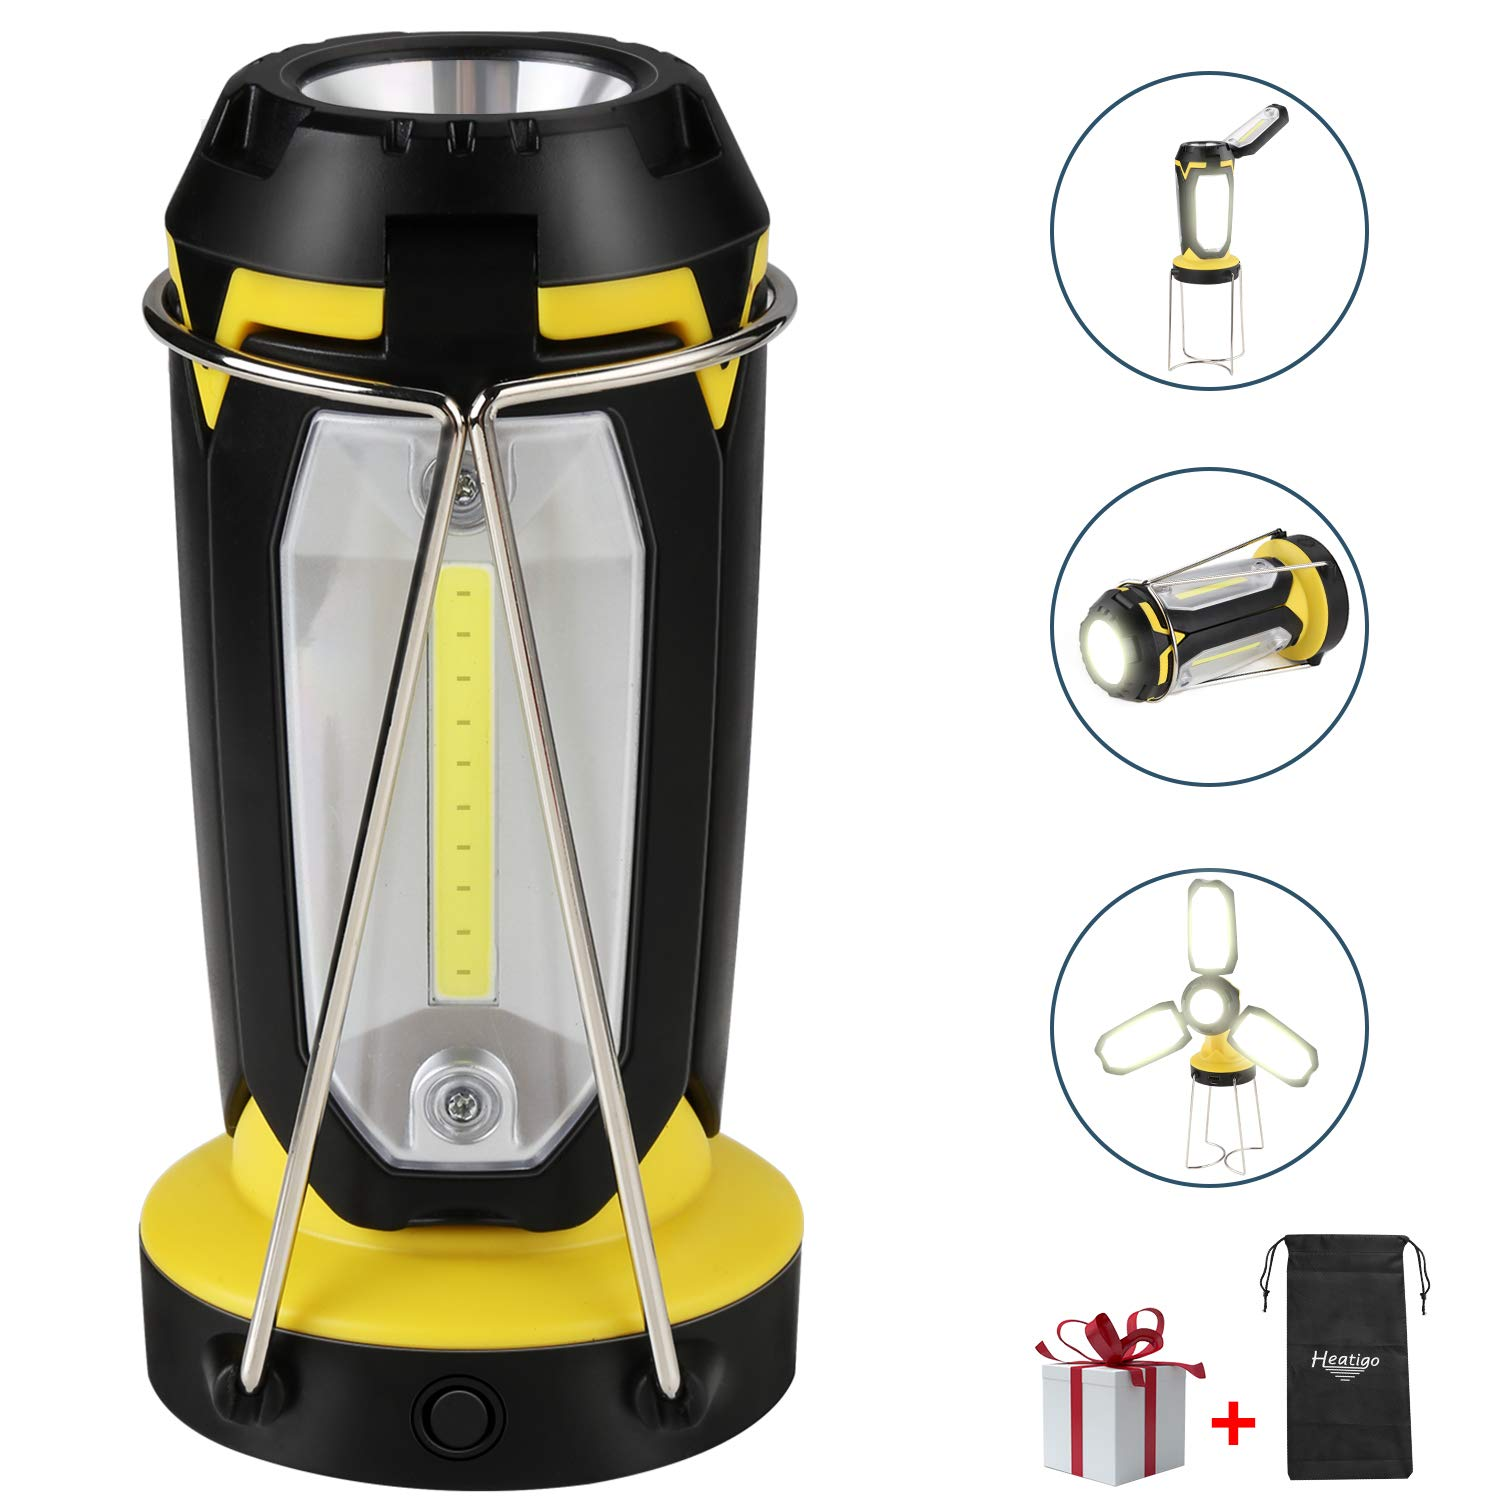 Camping Lantern,Heatigo 2019 Upgrade 2-in-1 LED Foldable Multiple Ways of Lighting Camping Lantern/&Power Bank Charger,USB Charging Outdoor Searchlight for Emergency,Hiking,Fishing,Power Cuts and More